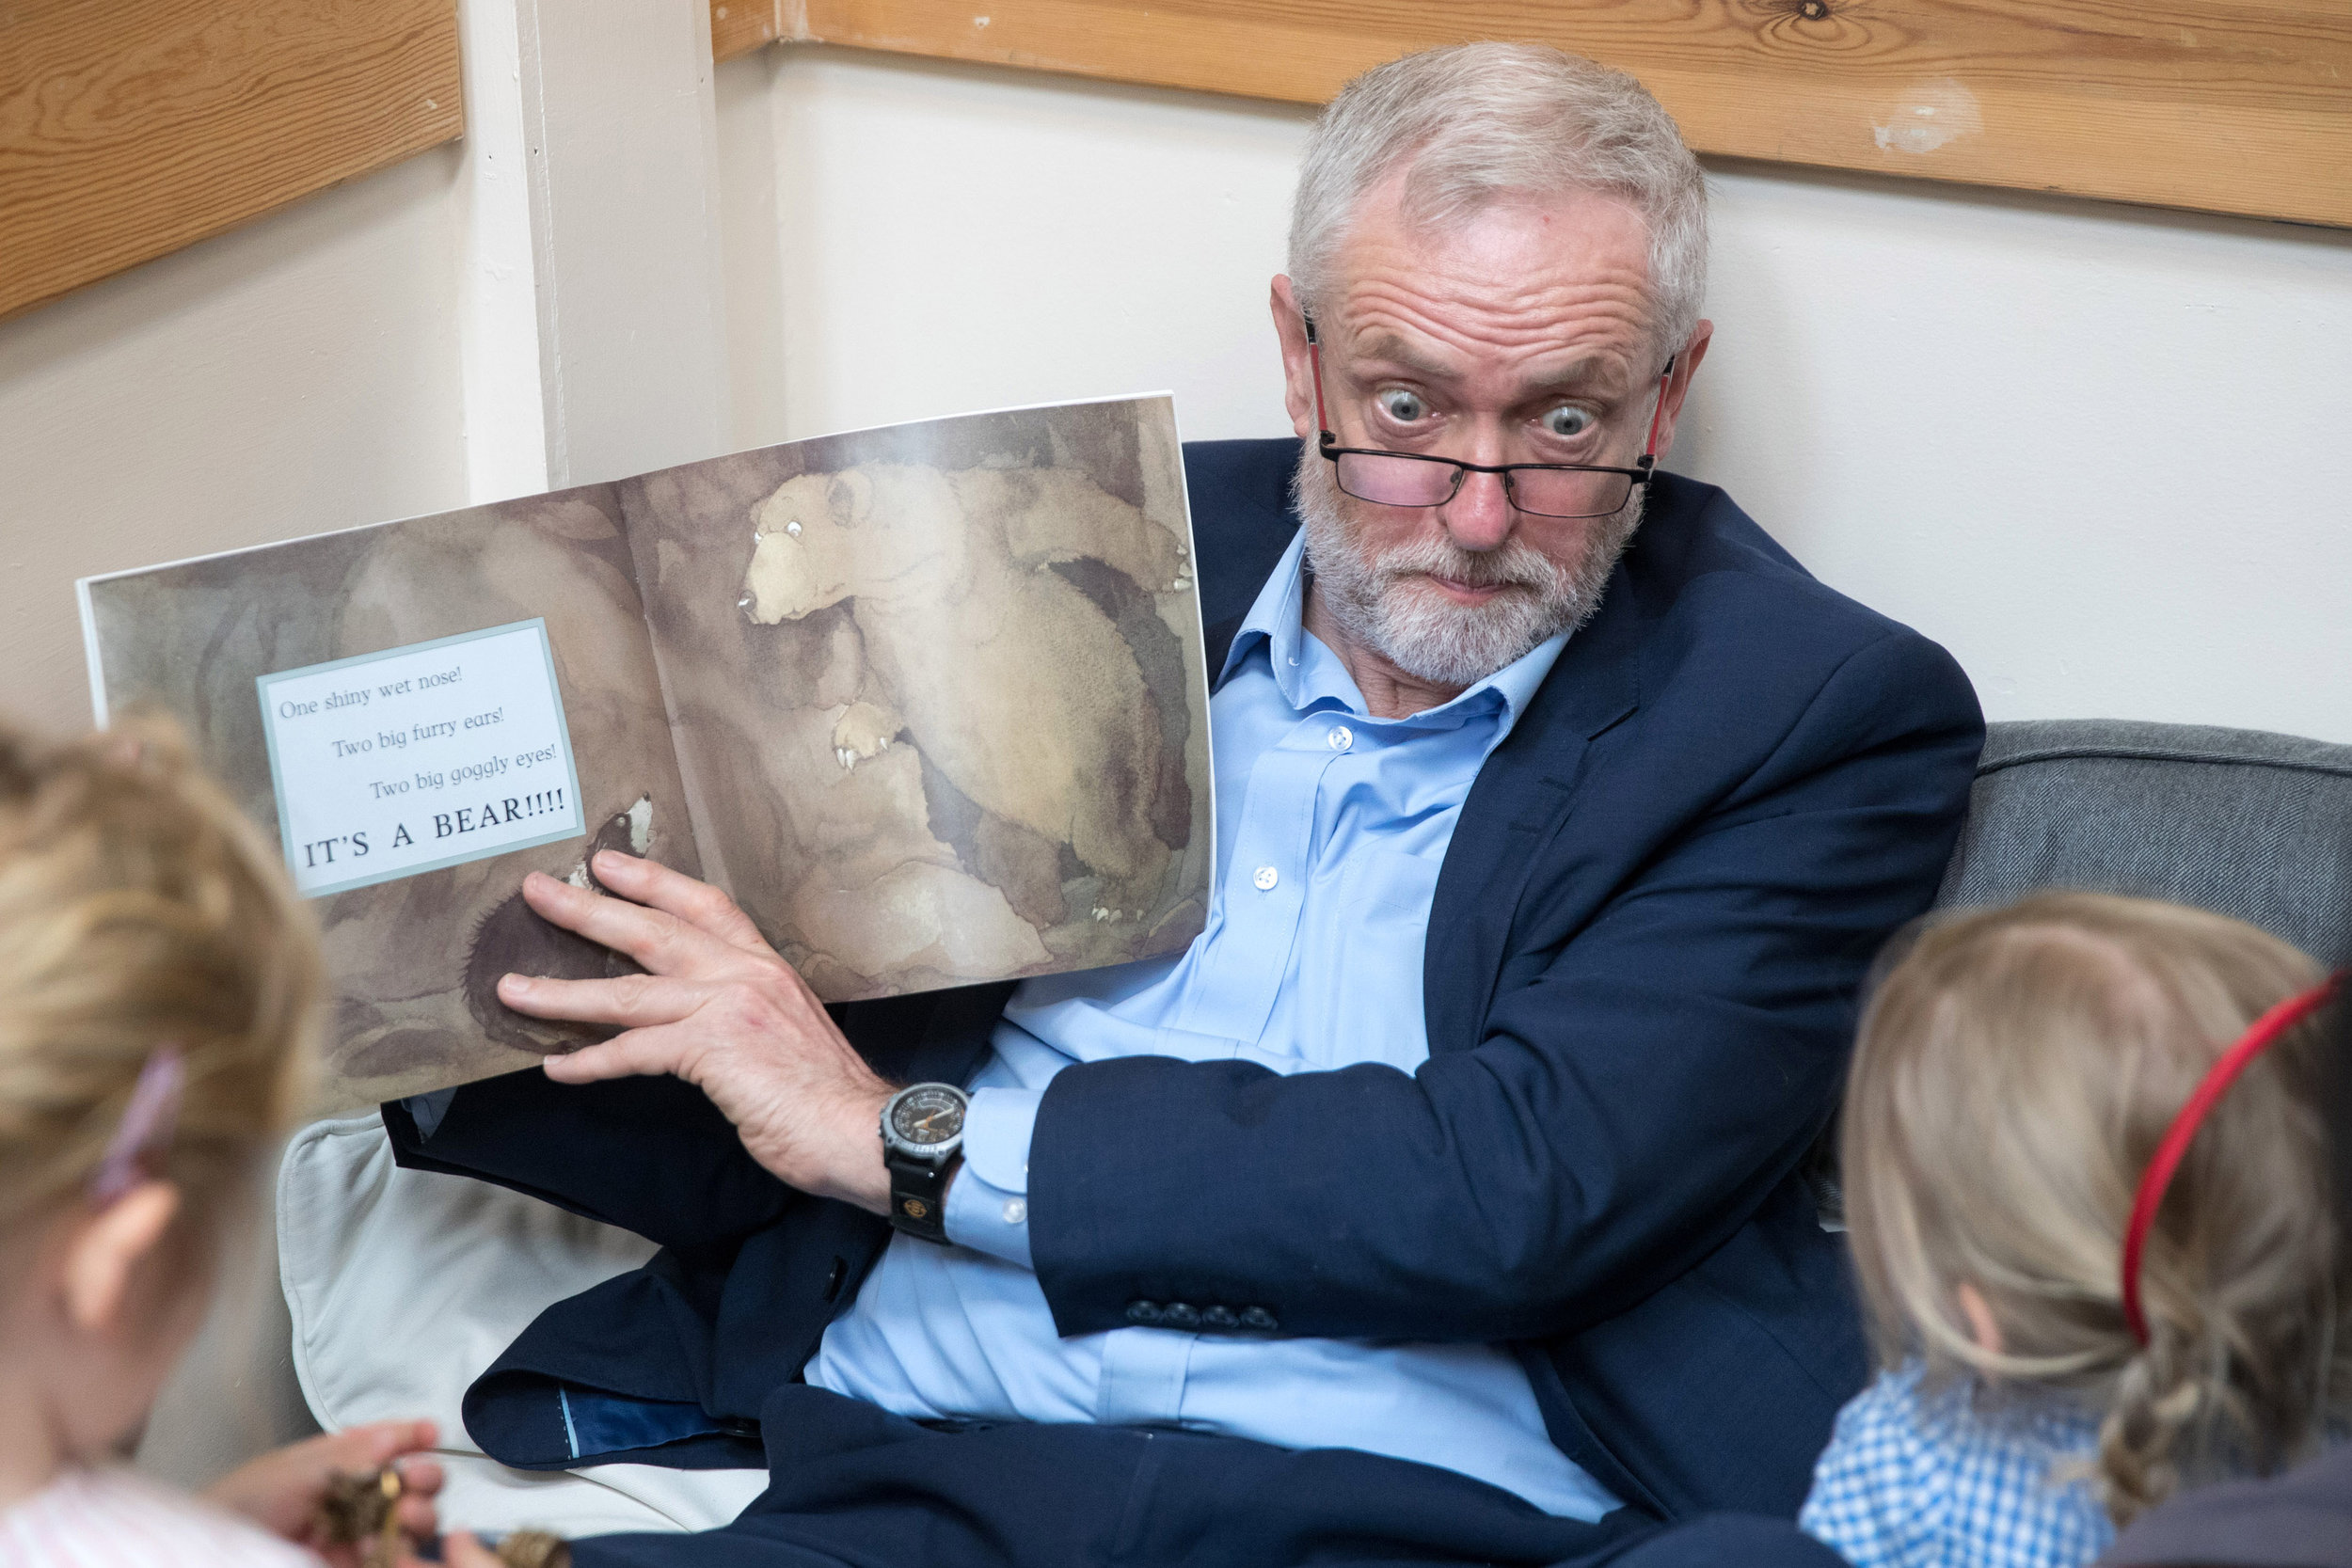 Labour party leader Jeremy Corbyn reads the book �We're Going on a Bear Hunt� to children during a visit to Brentry Children's Centre in Bristol in the run up to the General Election.Photo by Matt Cardy  21 April 2017